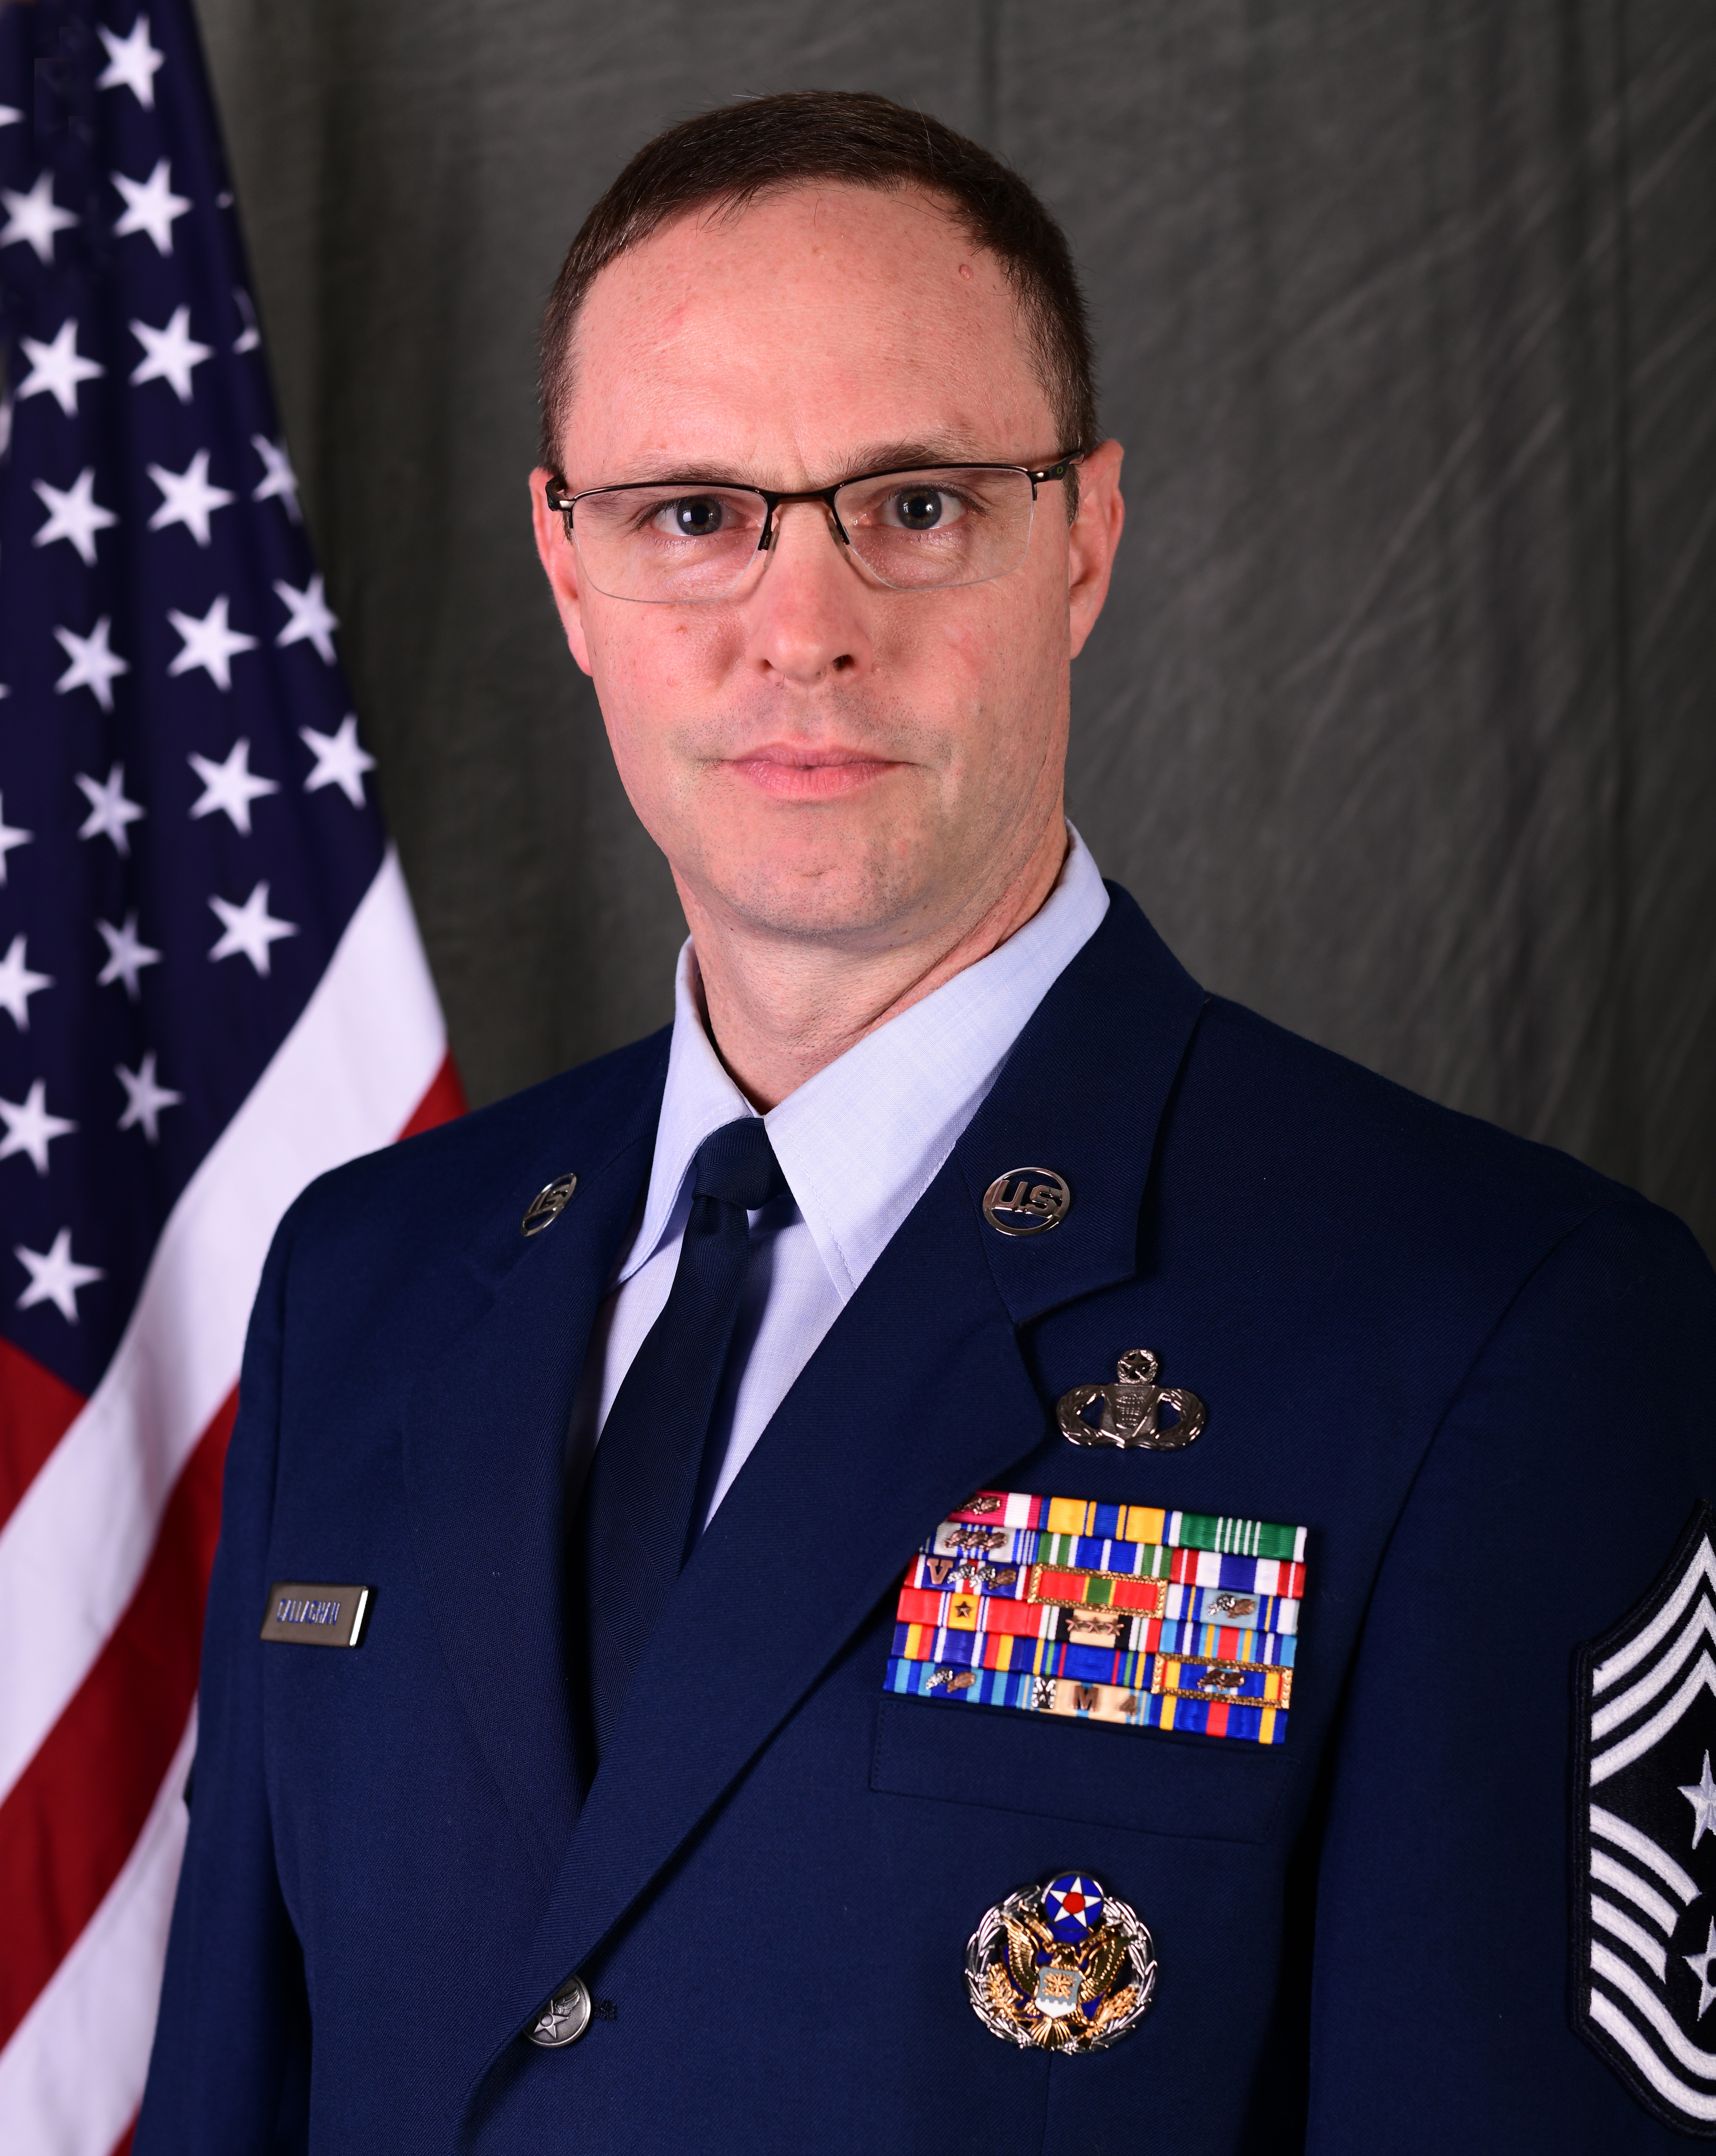 CMSgt. David B. Callaghan Sr